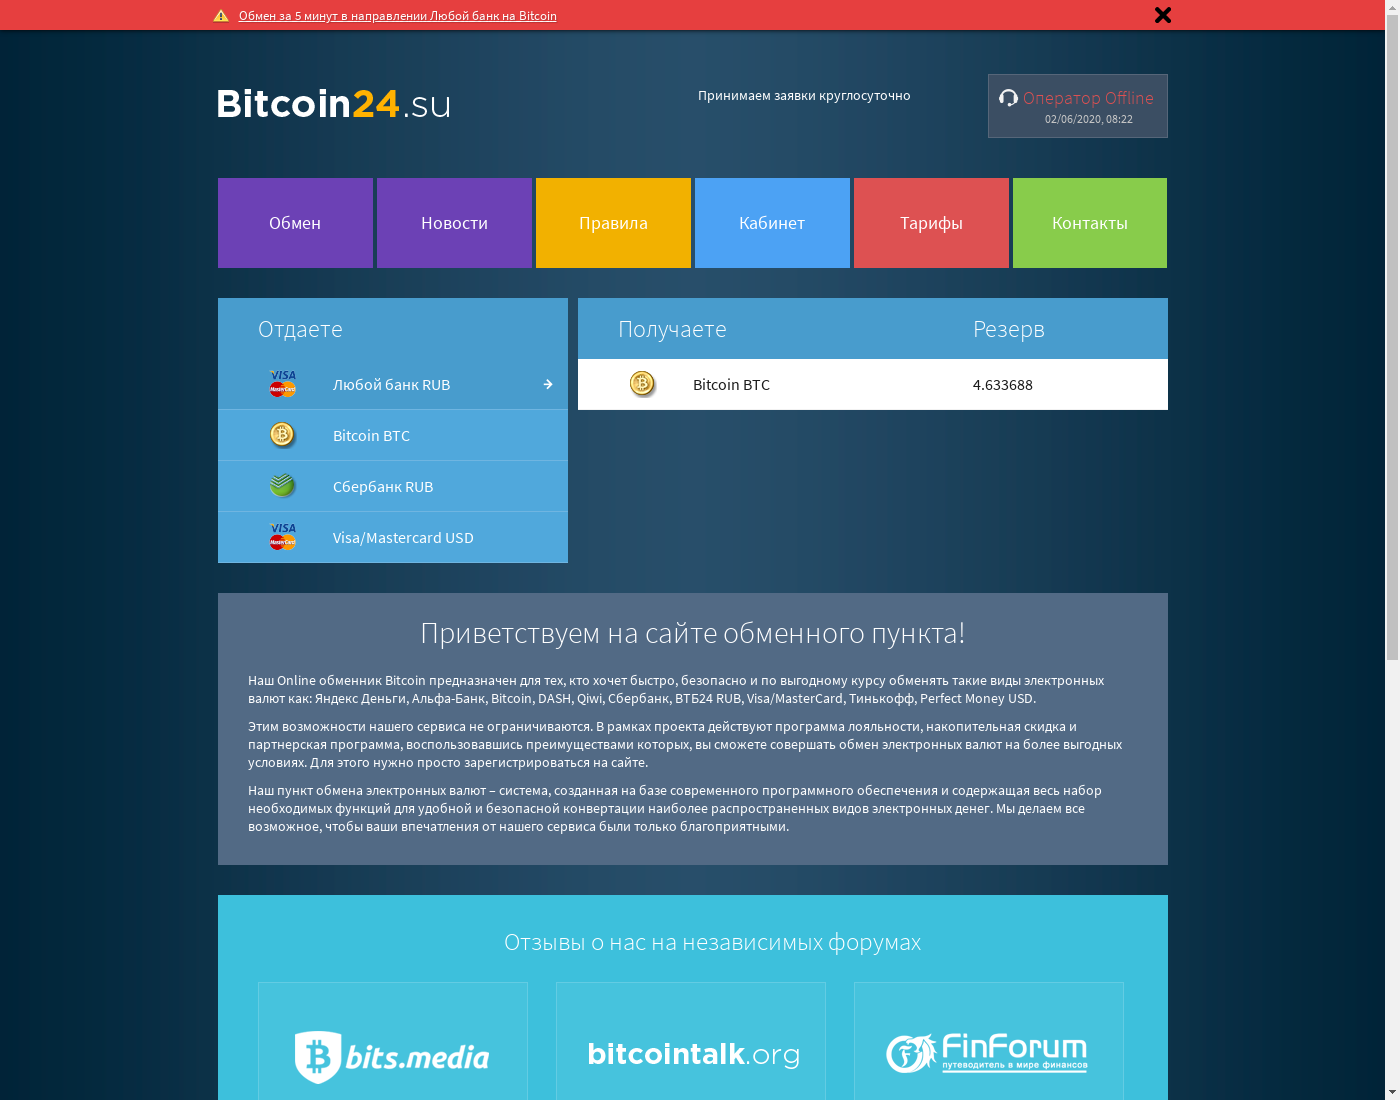 bitcoin24su user interface: the home page in English